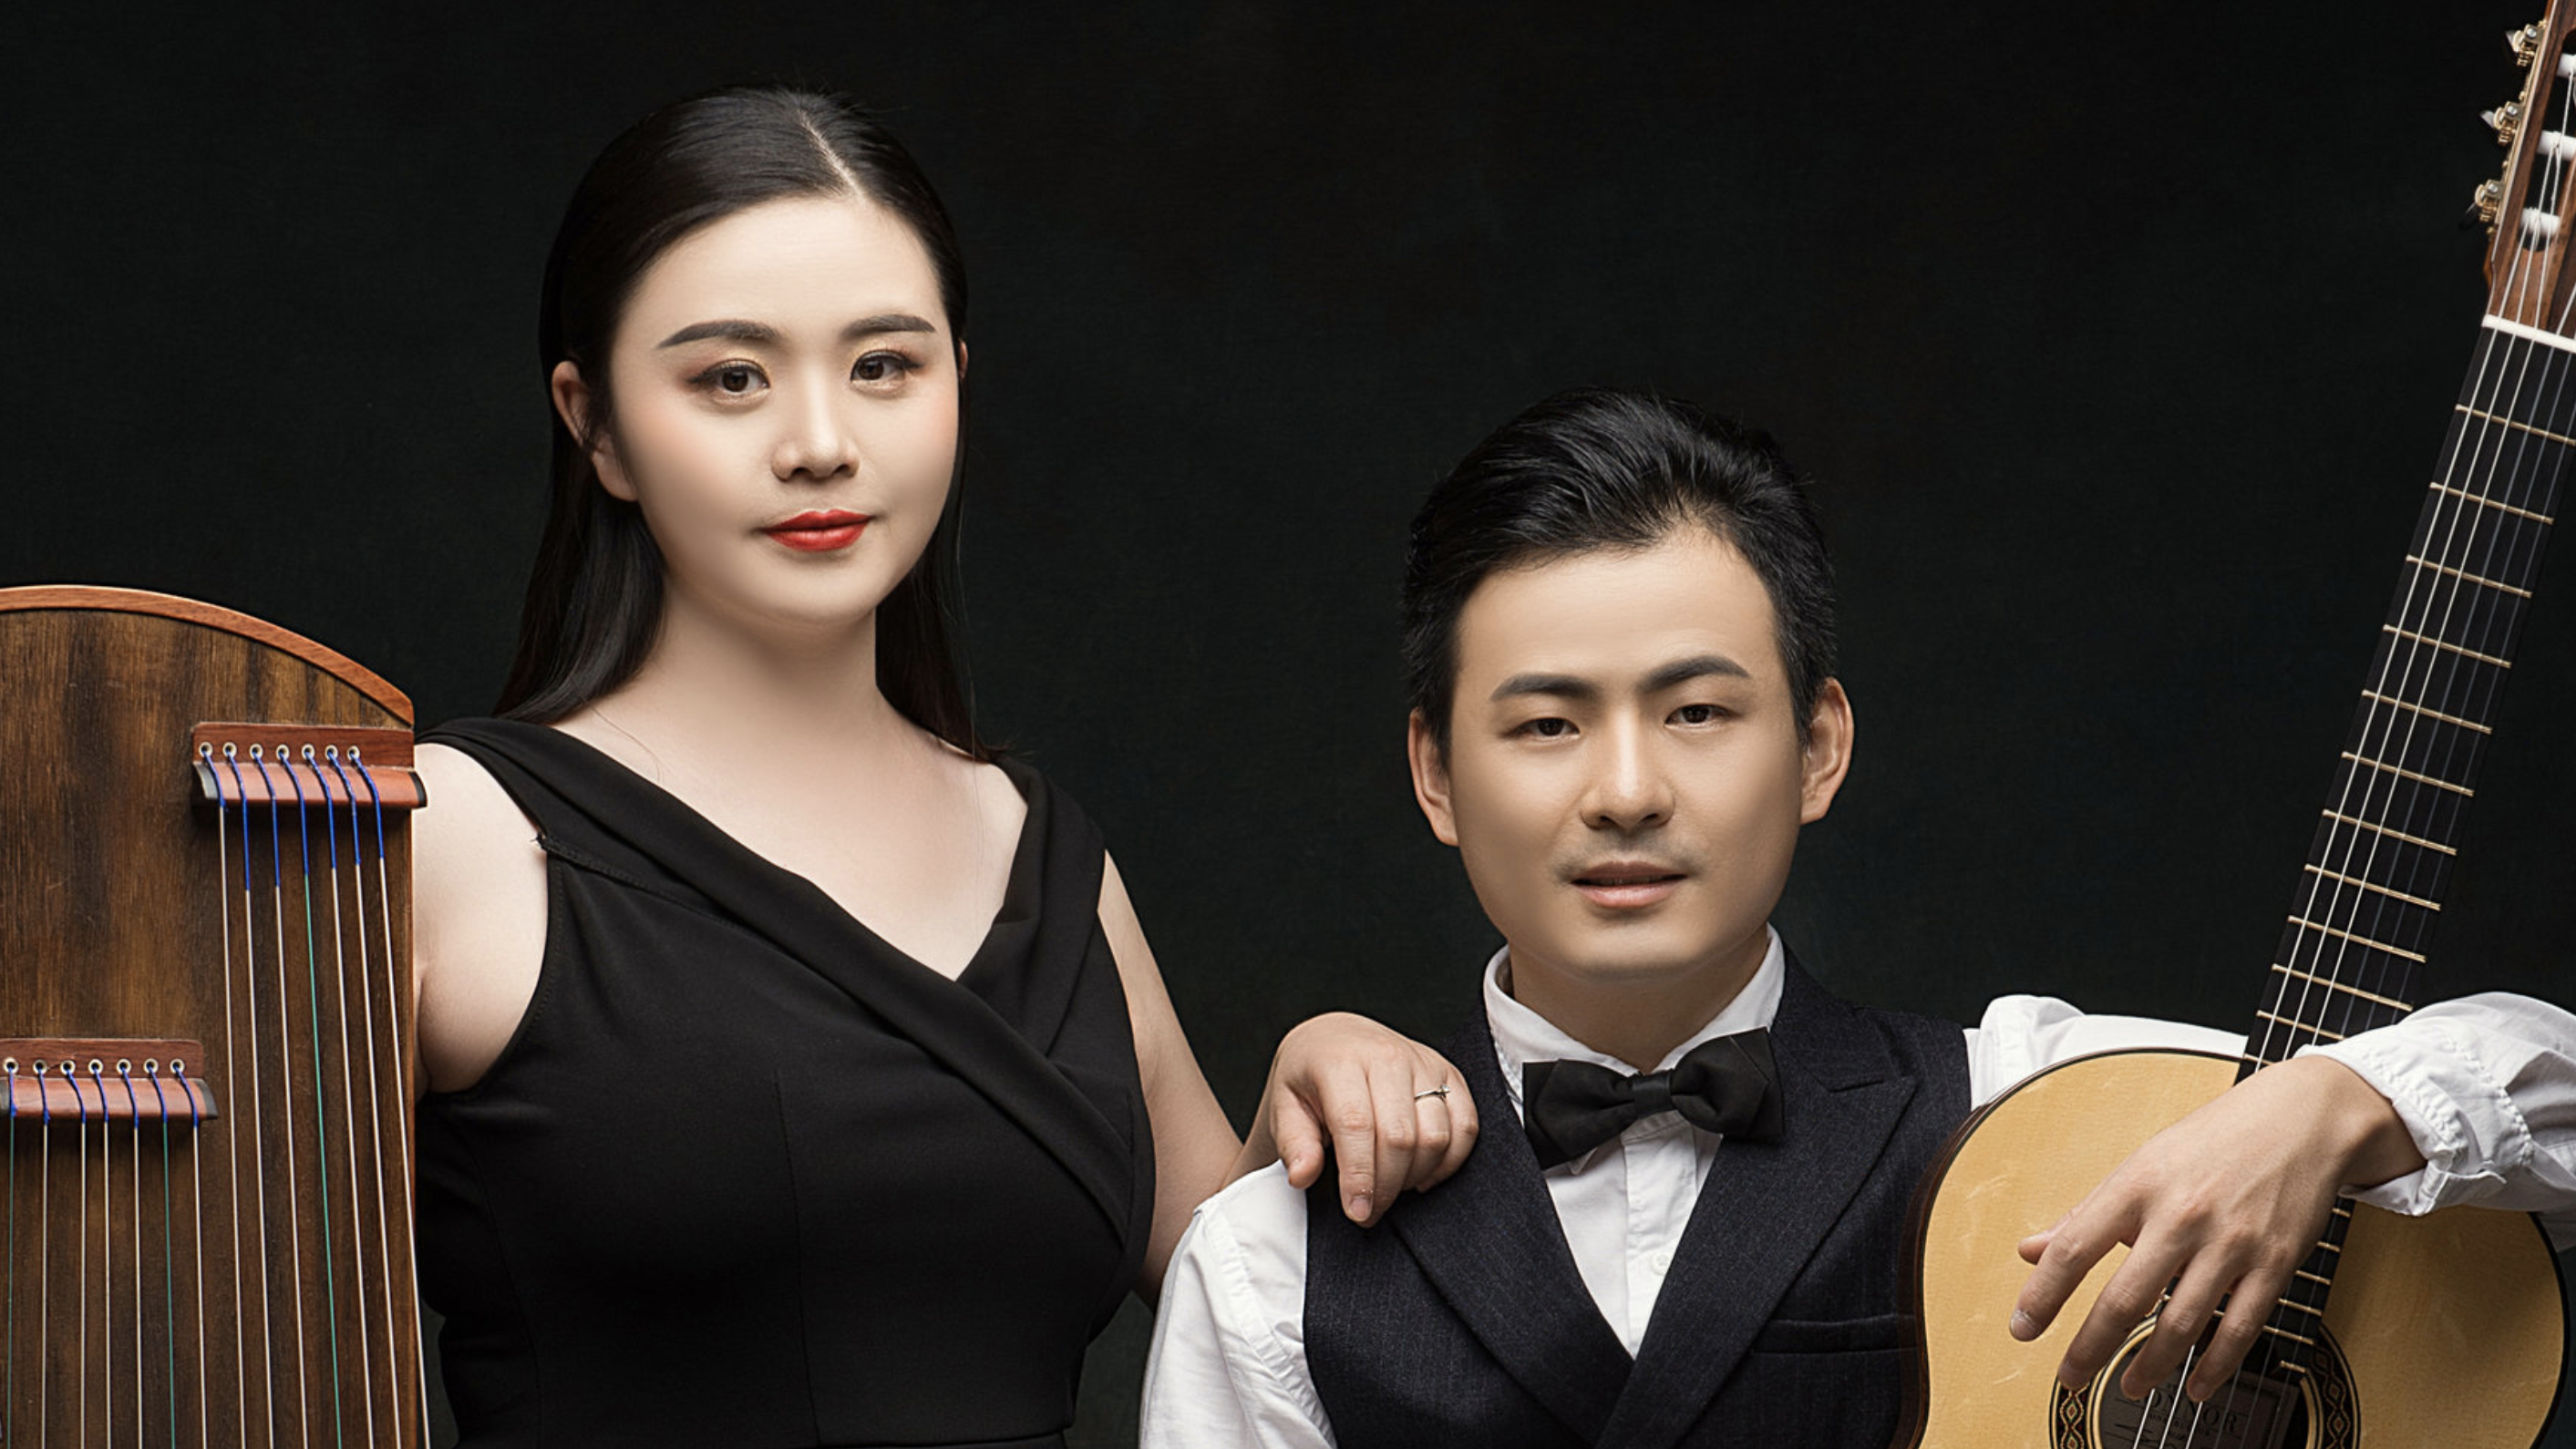 Jing Xia and Bin Hu perform together as Duo Chinoiserie.